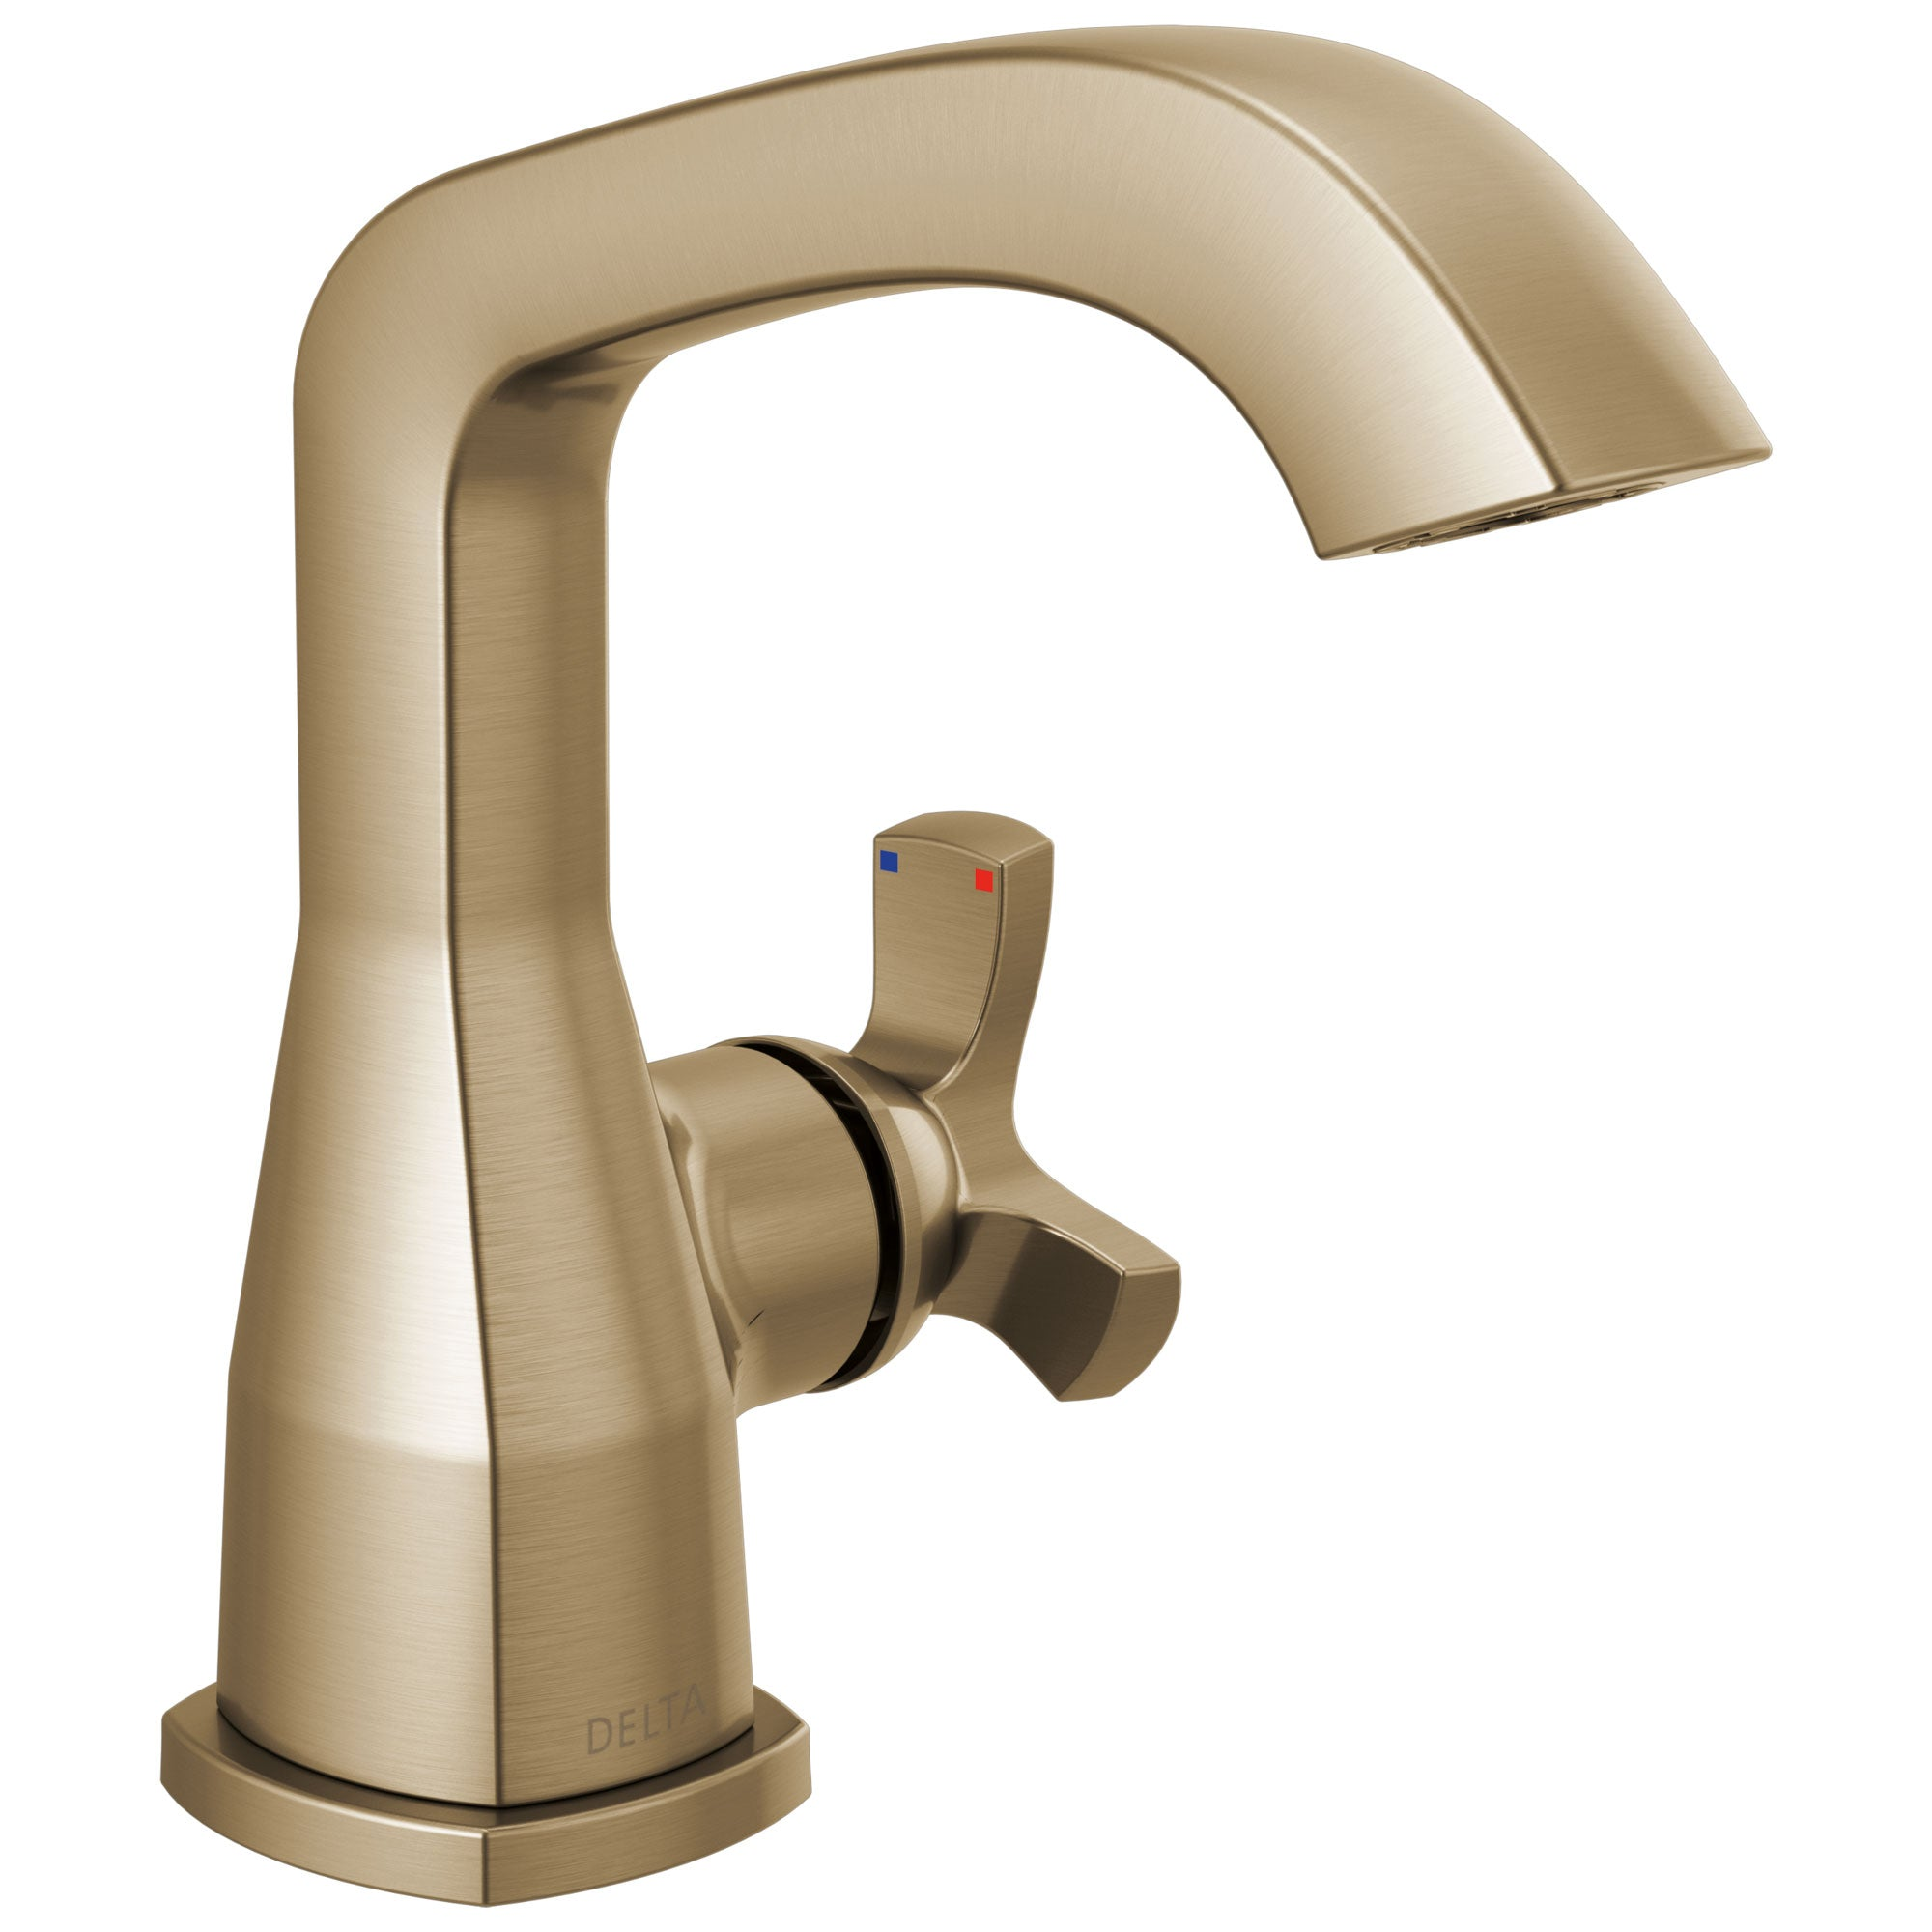 Delta Stryke Champagne Bronze Finish Single Hole Bathroom Sink Faucet Includes Helo Cross Handle and Matching Drain D3602V